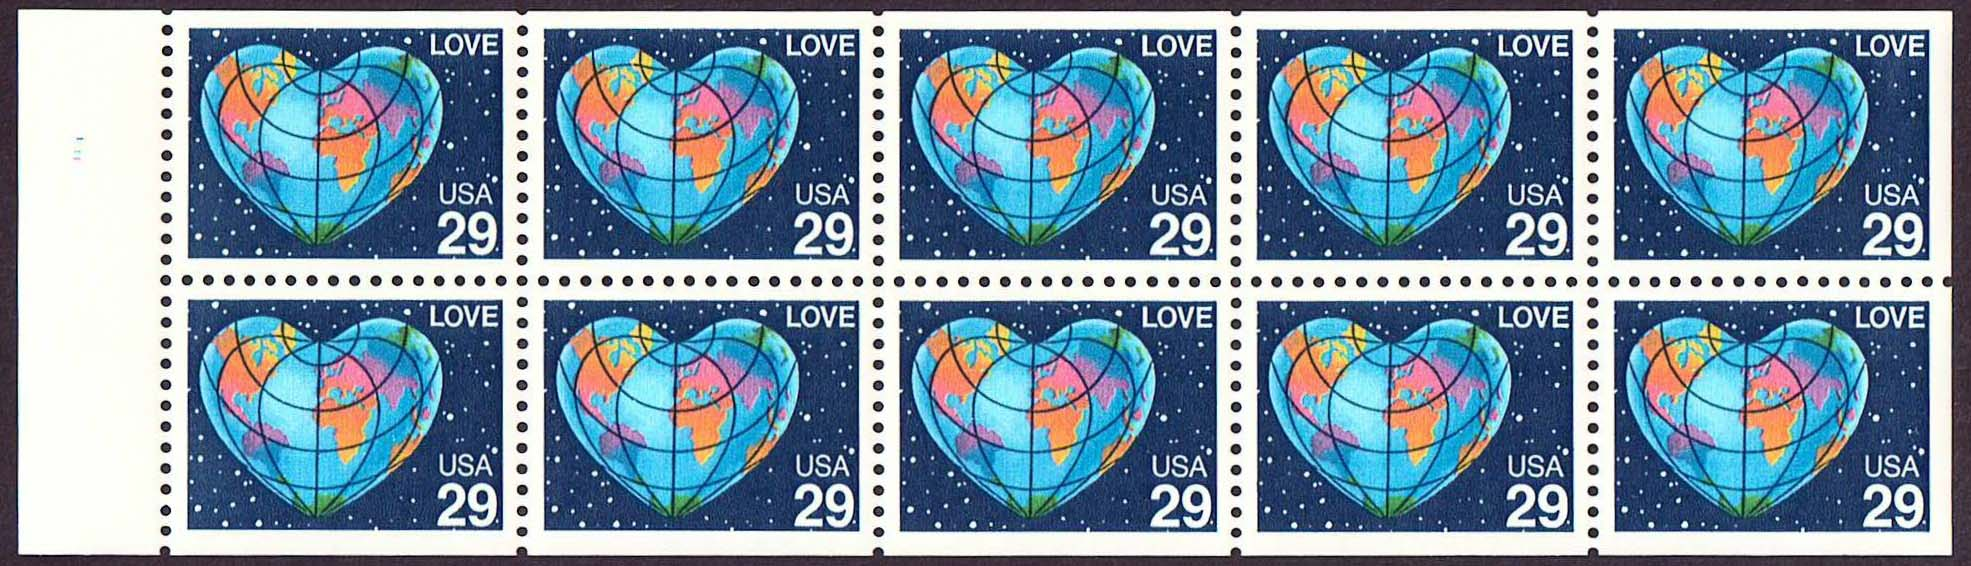 Scott 2536a Booklet pane of 10 (29 cents)